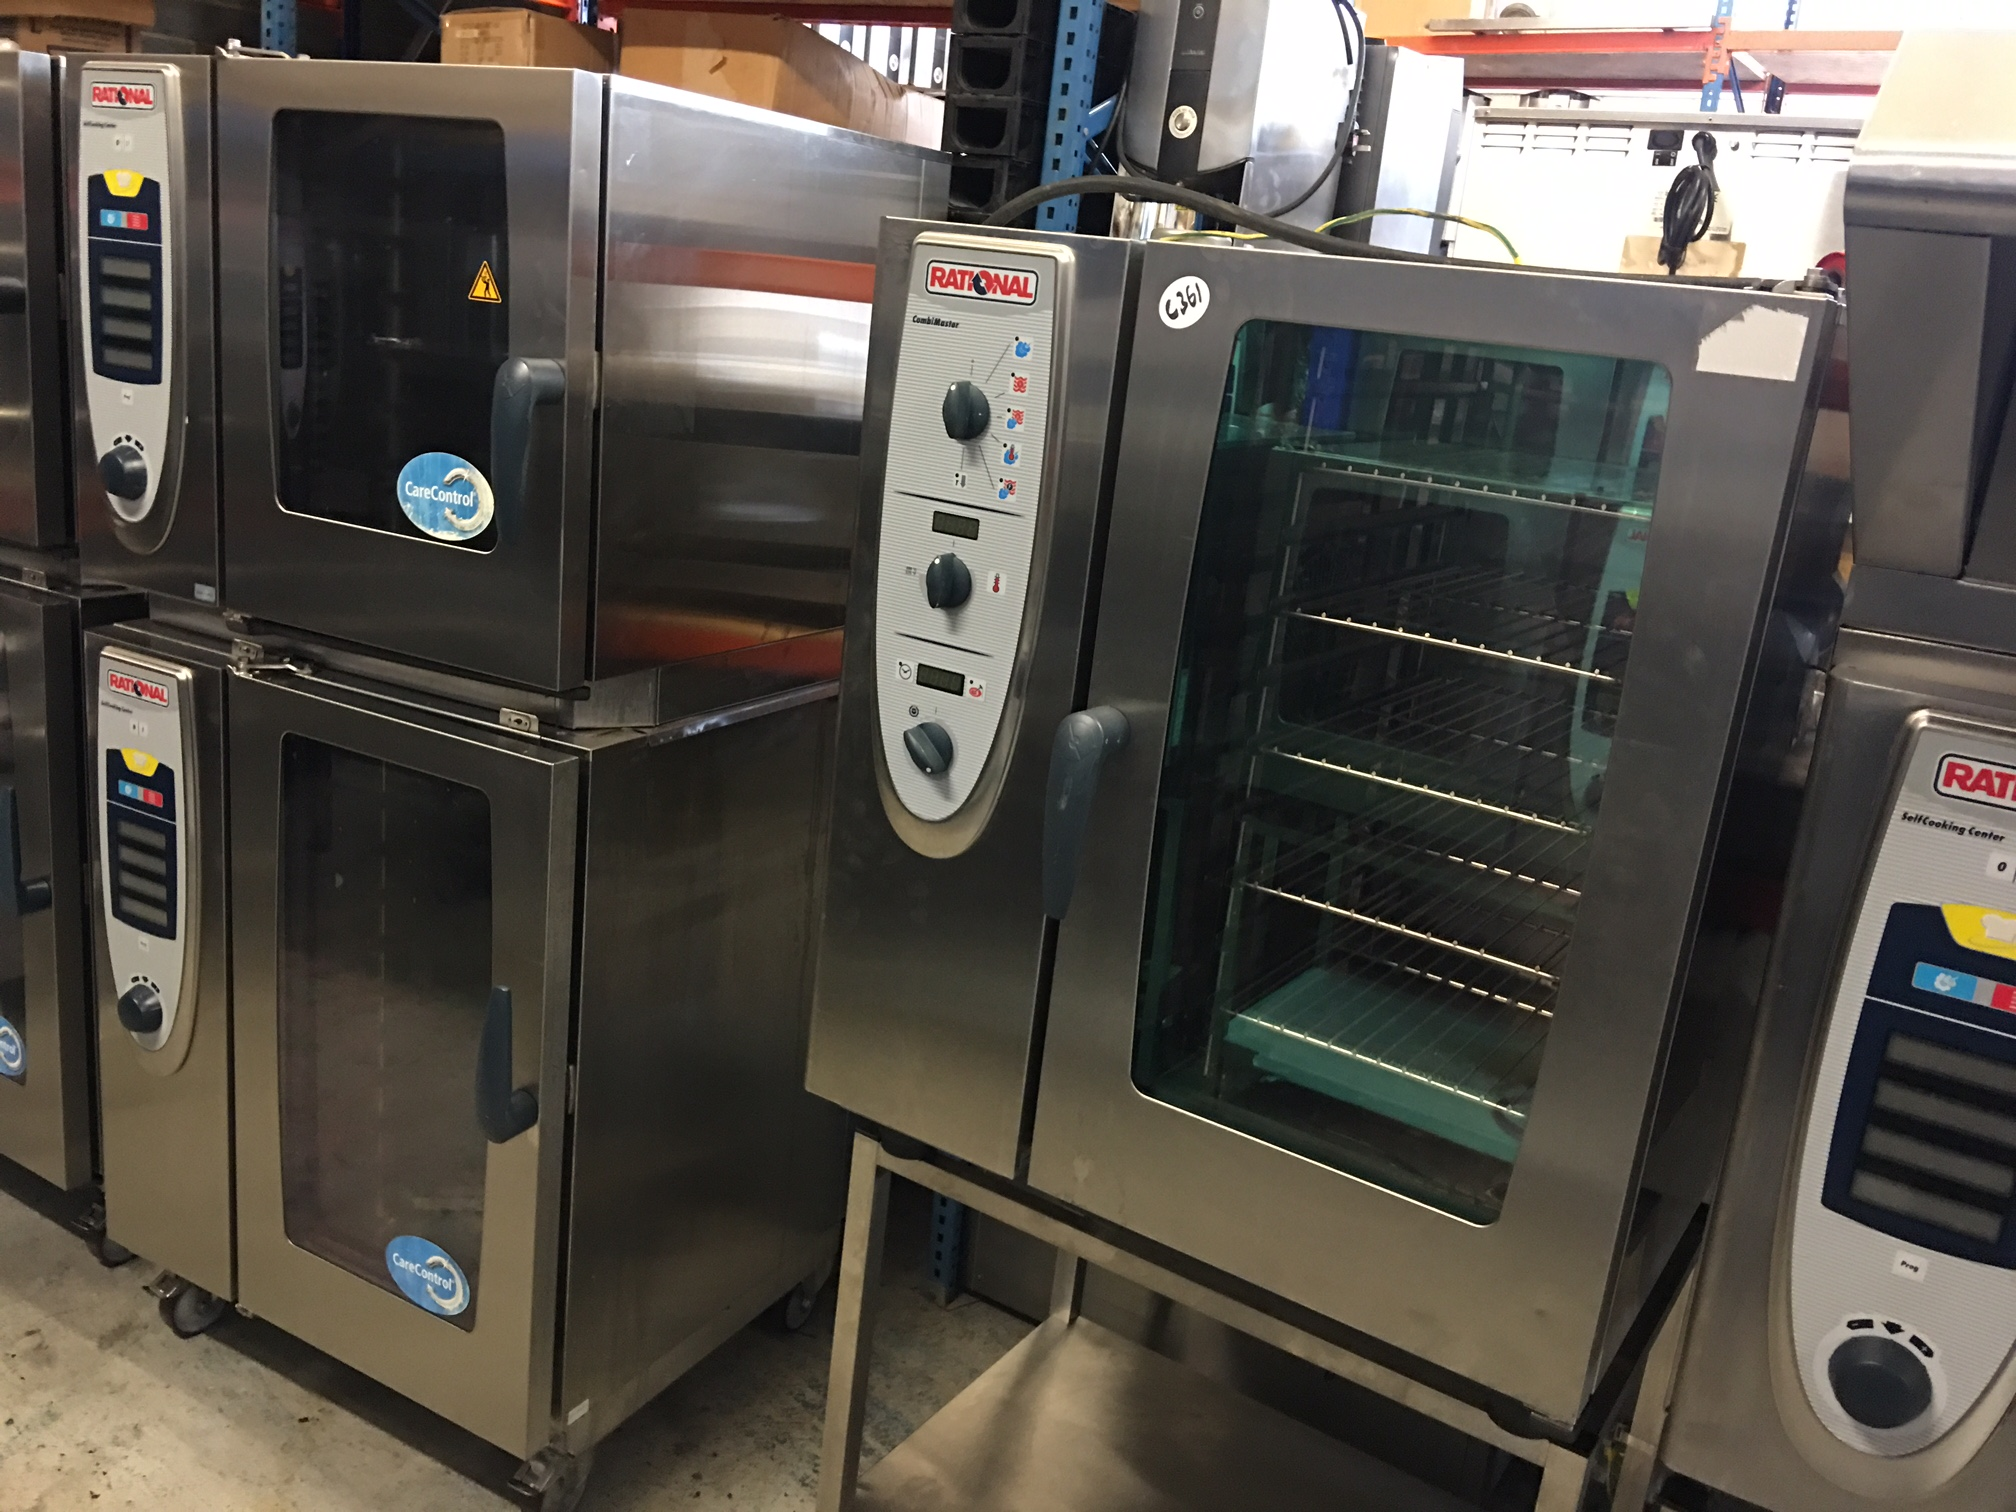 IMG_9686 rational cm 101 e combimaster 10 grid combi oven peri peri 3 phase rational cm101 wiring diagram at reclaimingppi.co